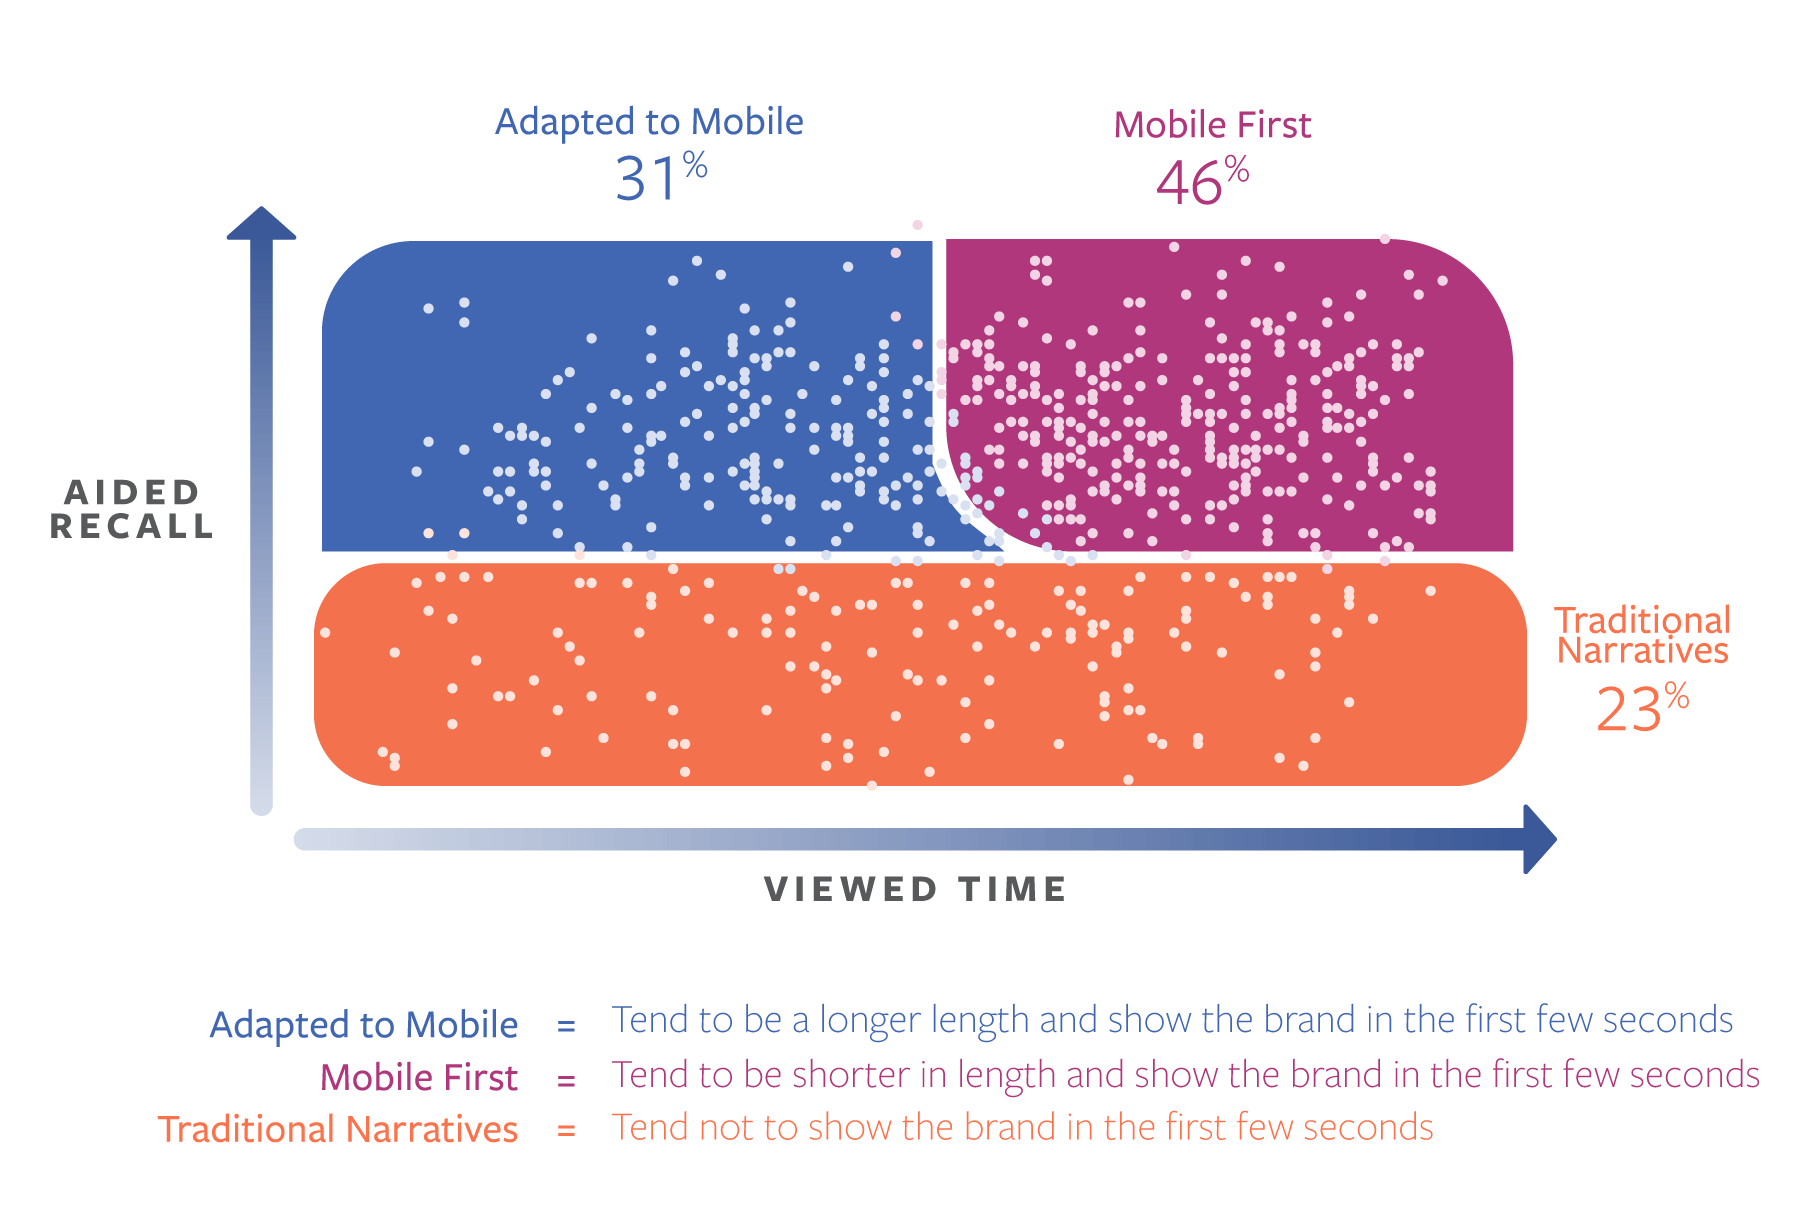 Facebook's Published a New Study Which Highlights Effective Mobile Video Techniques